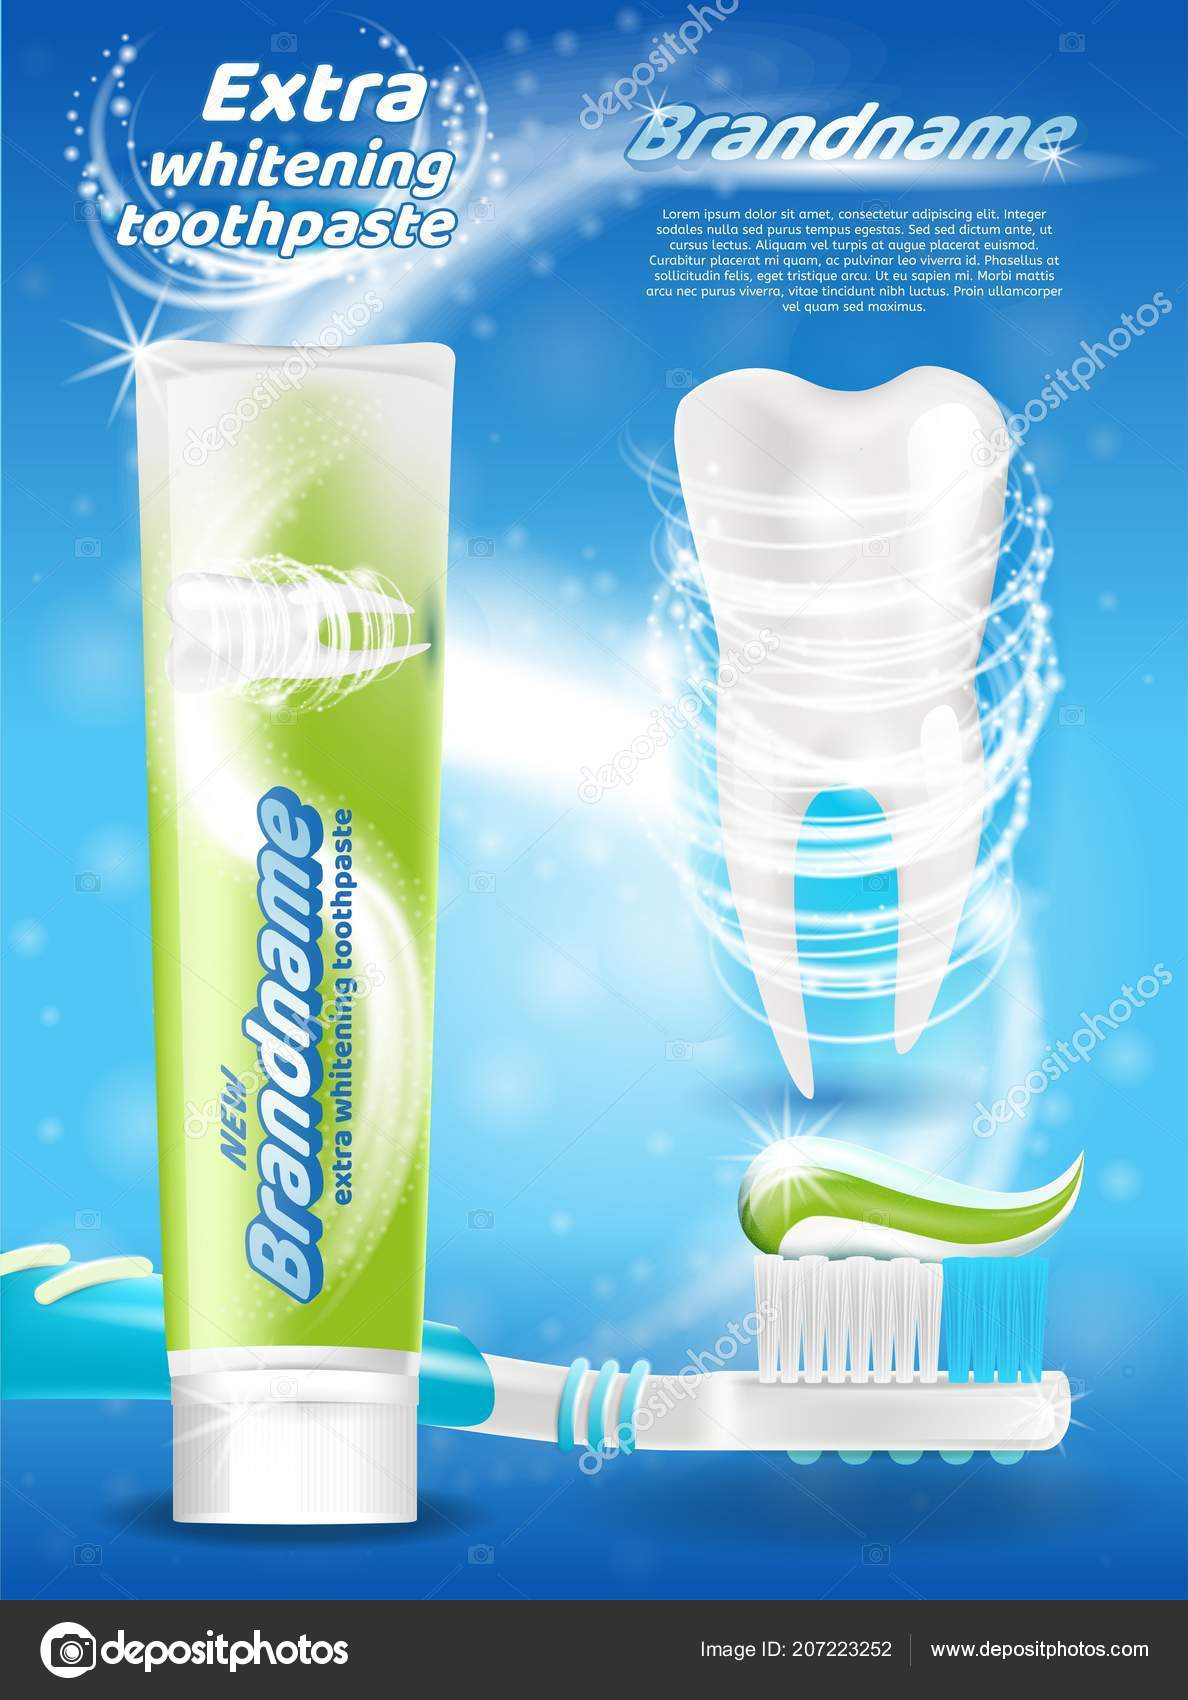 consumer preference towards branded toothpaste There is paradigm shift towards higher value consumption among rural consumers like from tooth power towards tooth paste, from local brands towards popular national brands according to experts, the fmcg sector in the rural area has displayed a growth of 40 % in comparison to 25 % in urban market.